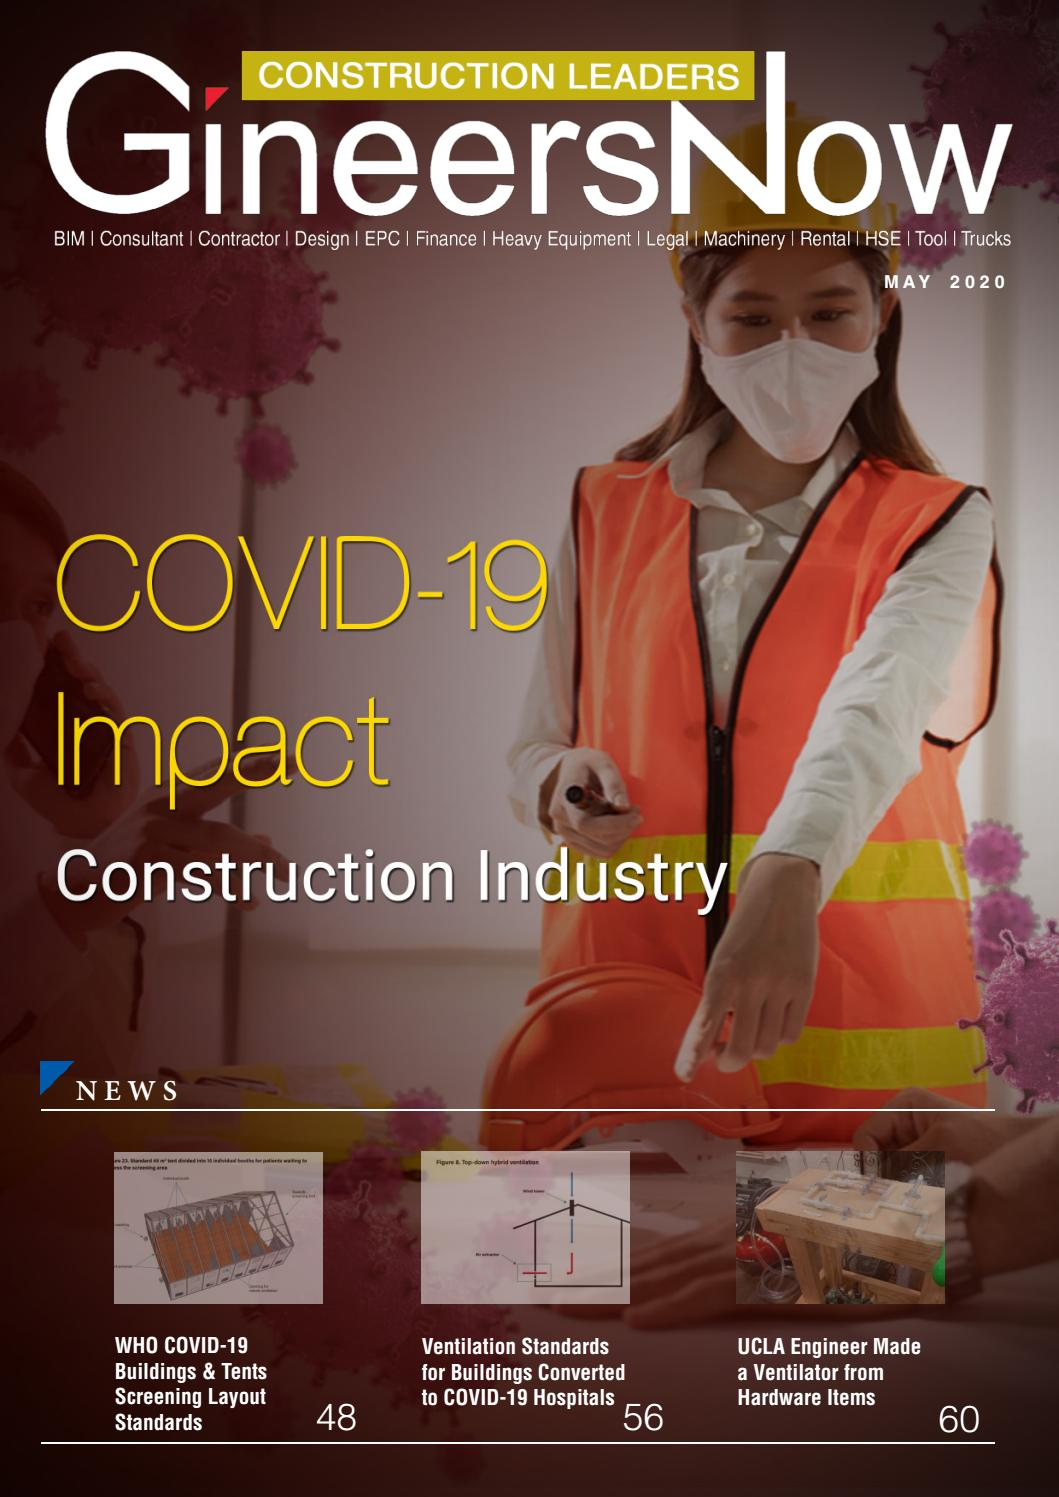 Gineersnow Construction May2020 Covid